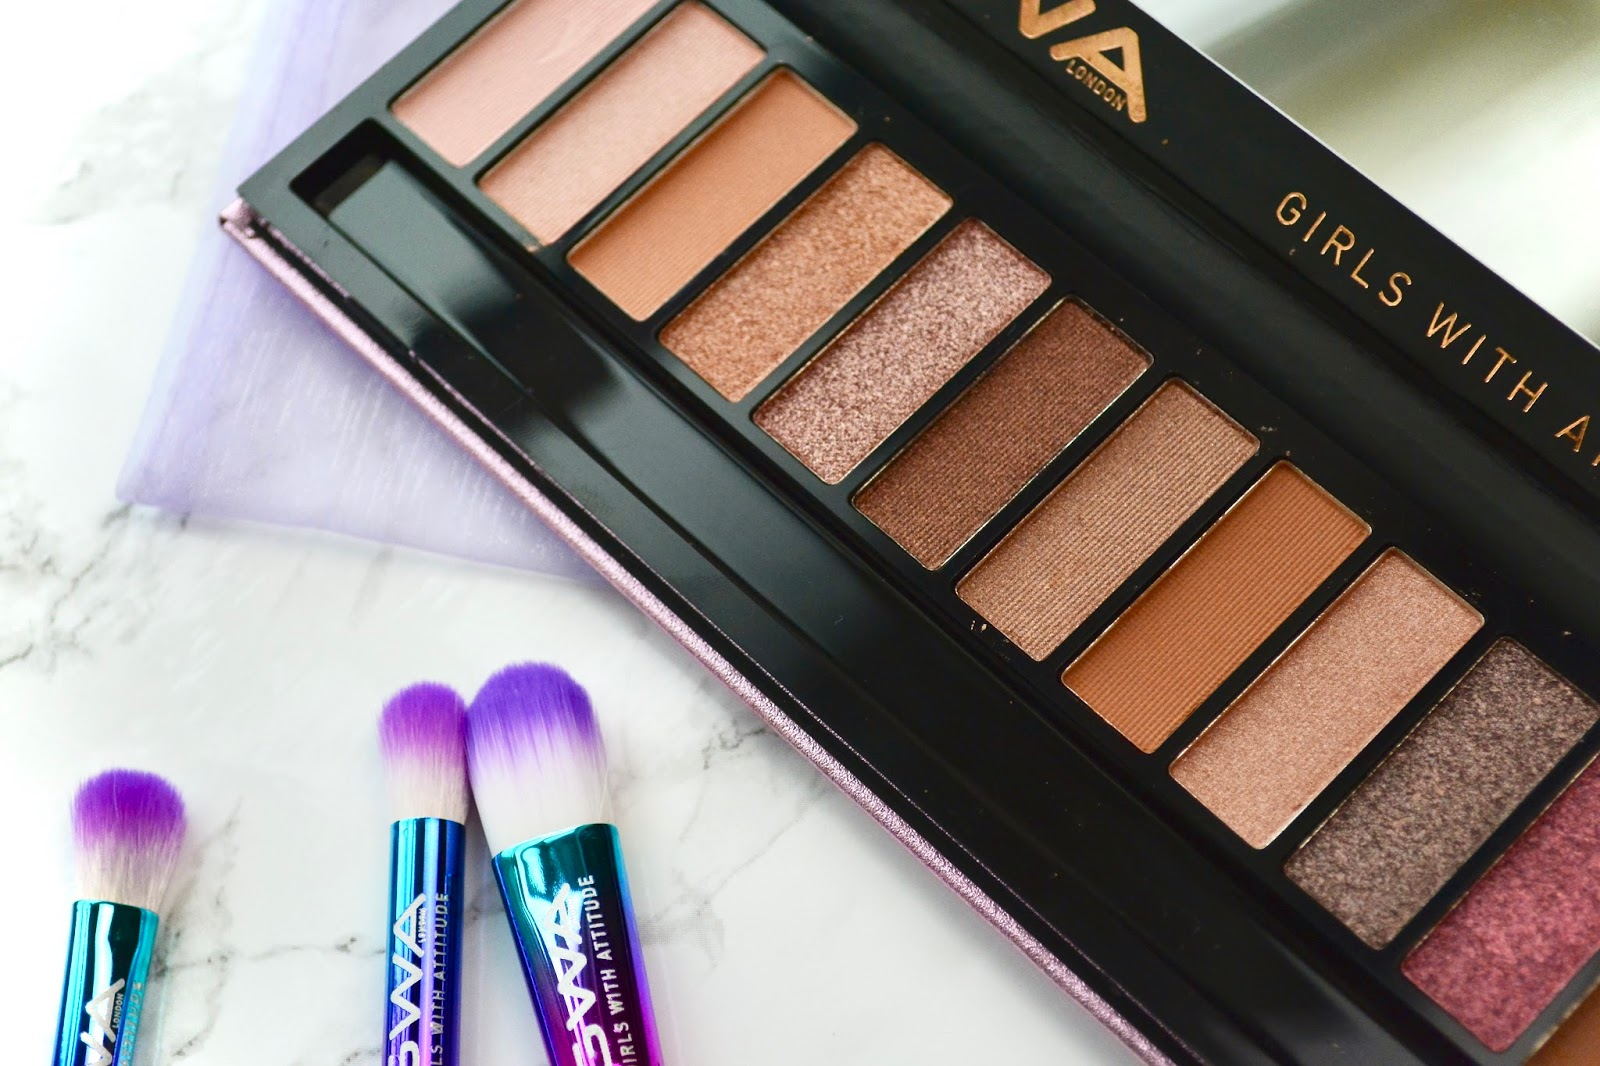 Girls With Attitude Enchanting Palette